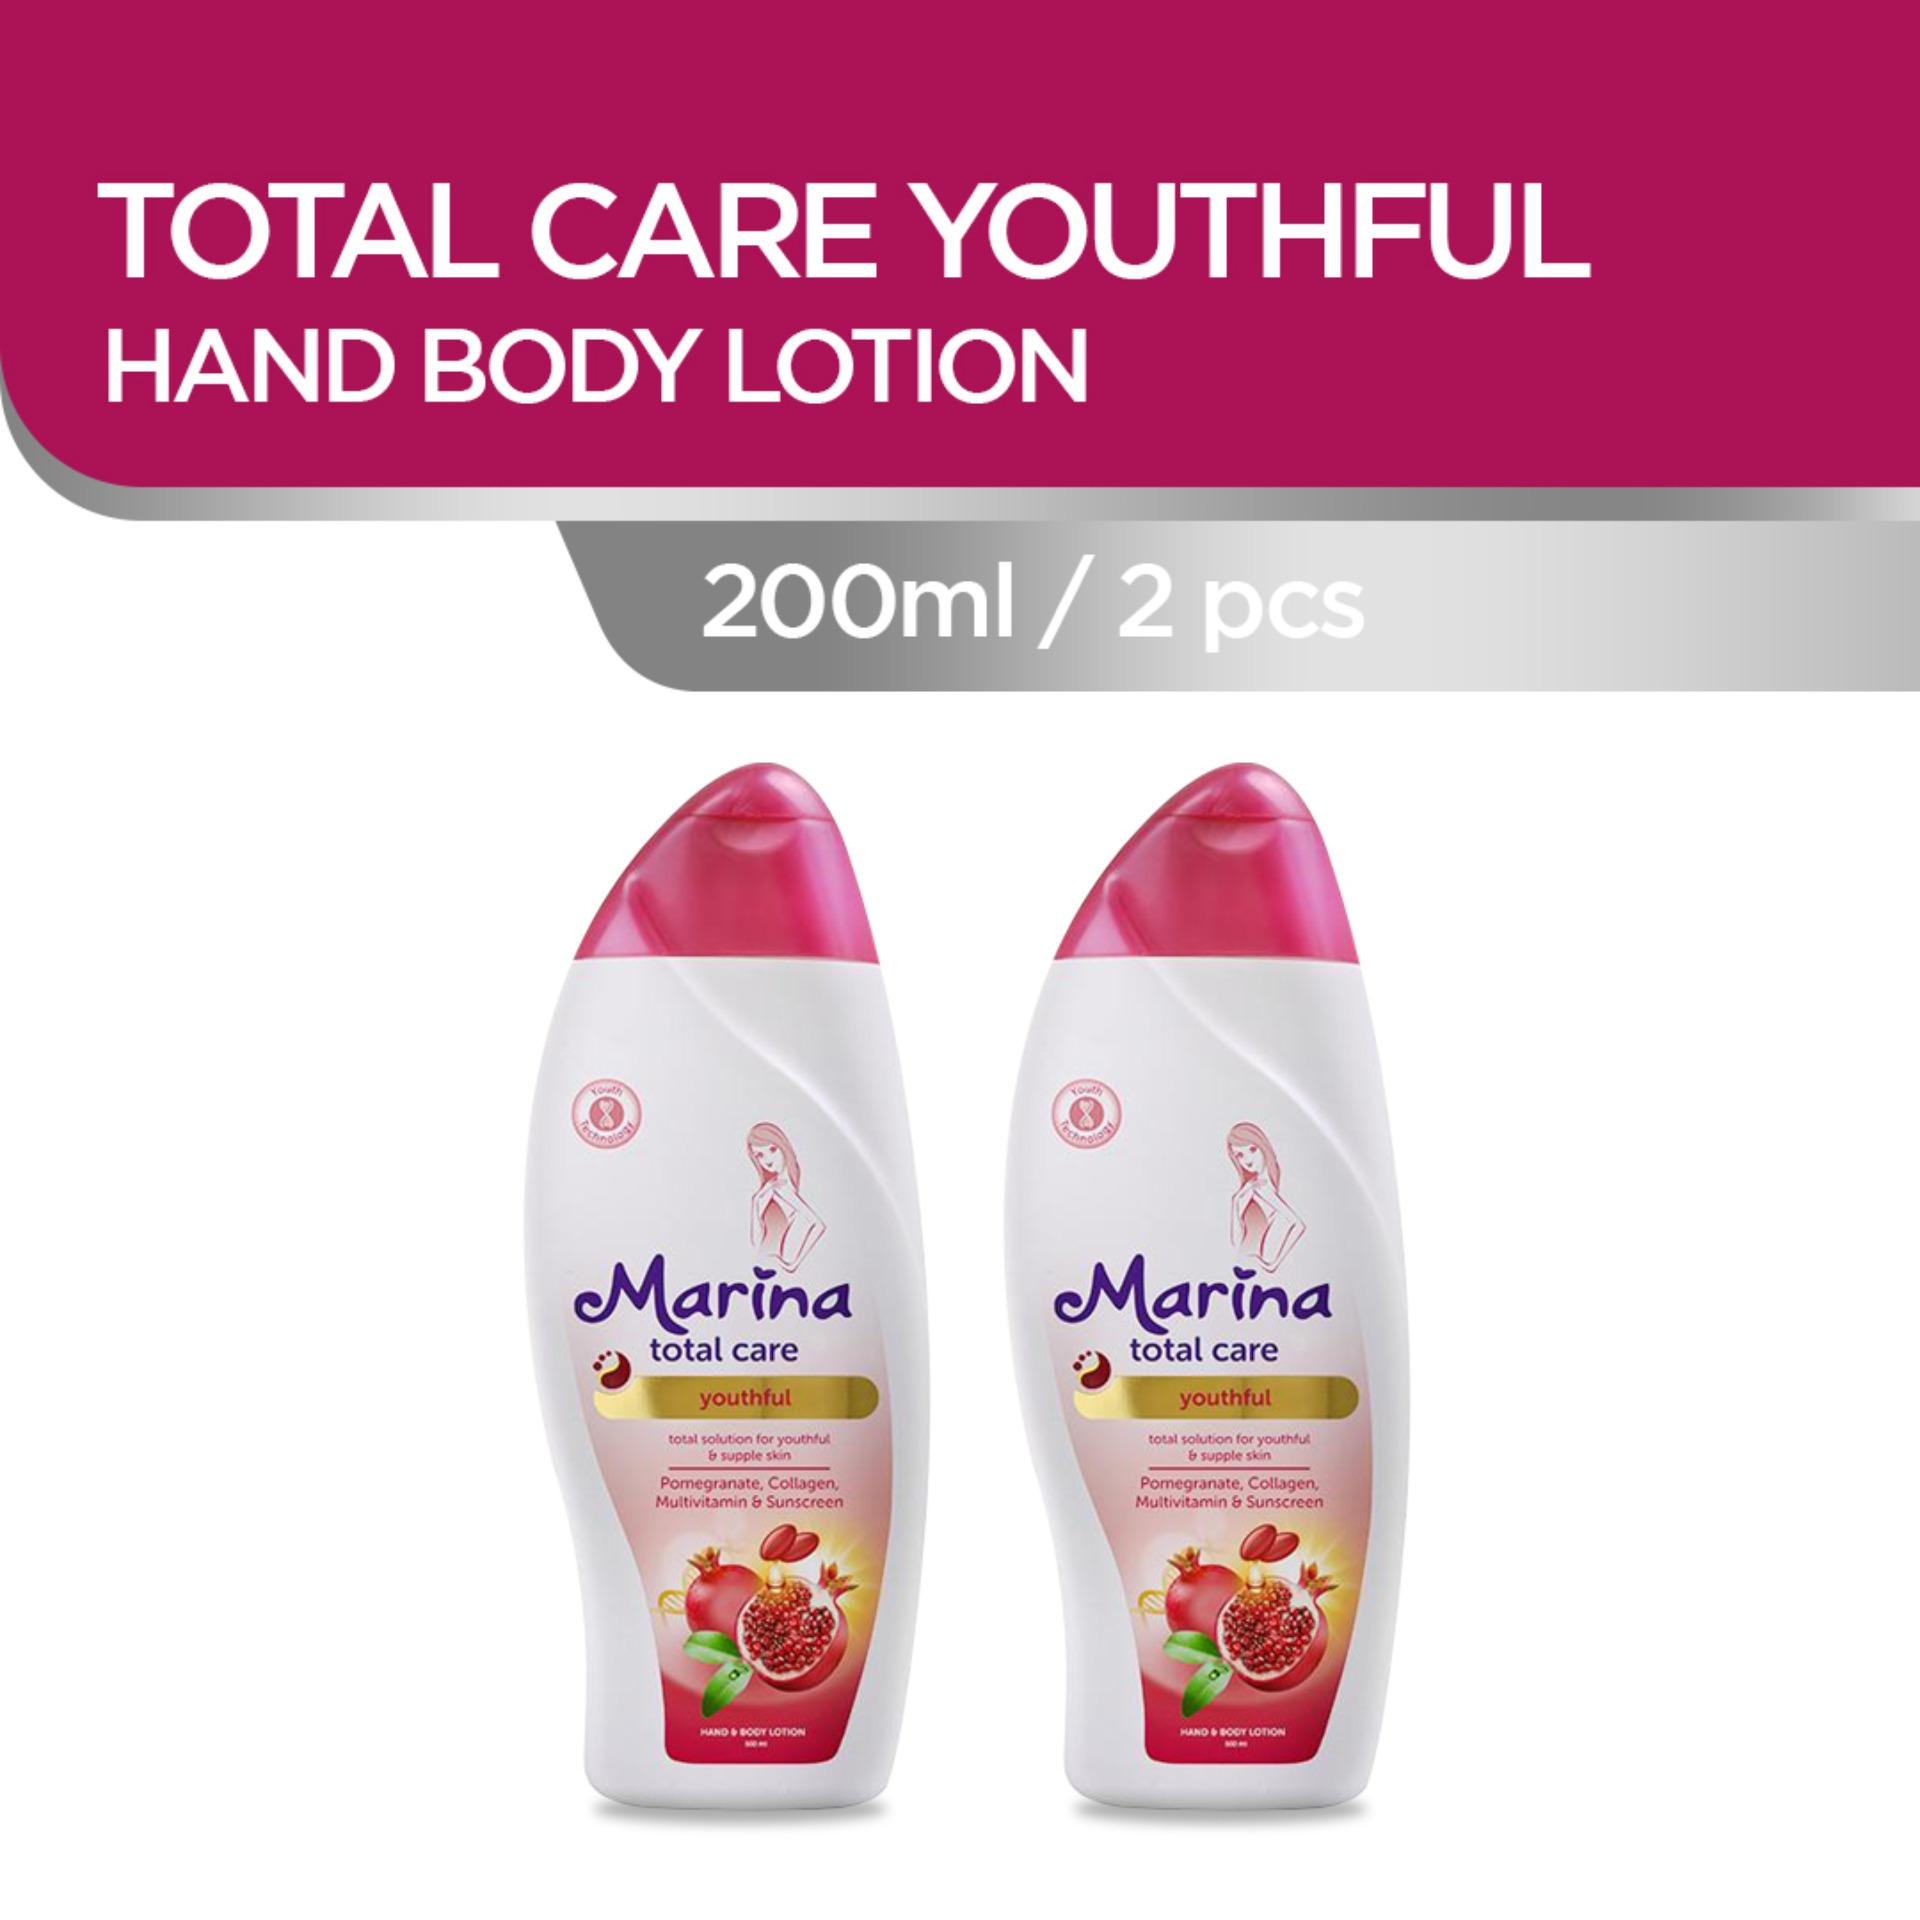 Marina Total Care Youthful Hand & Body Lotion [200 mL/ 2 pcs]